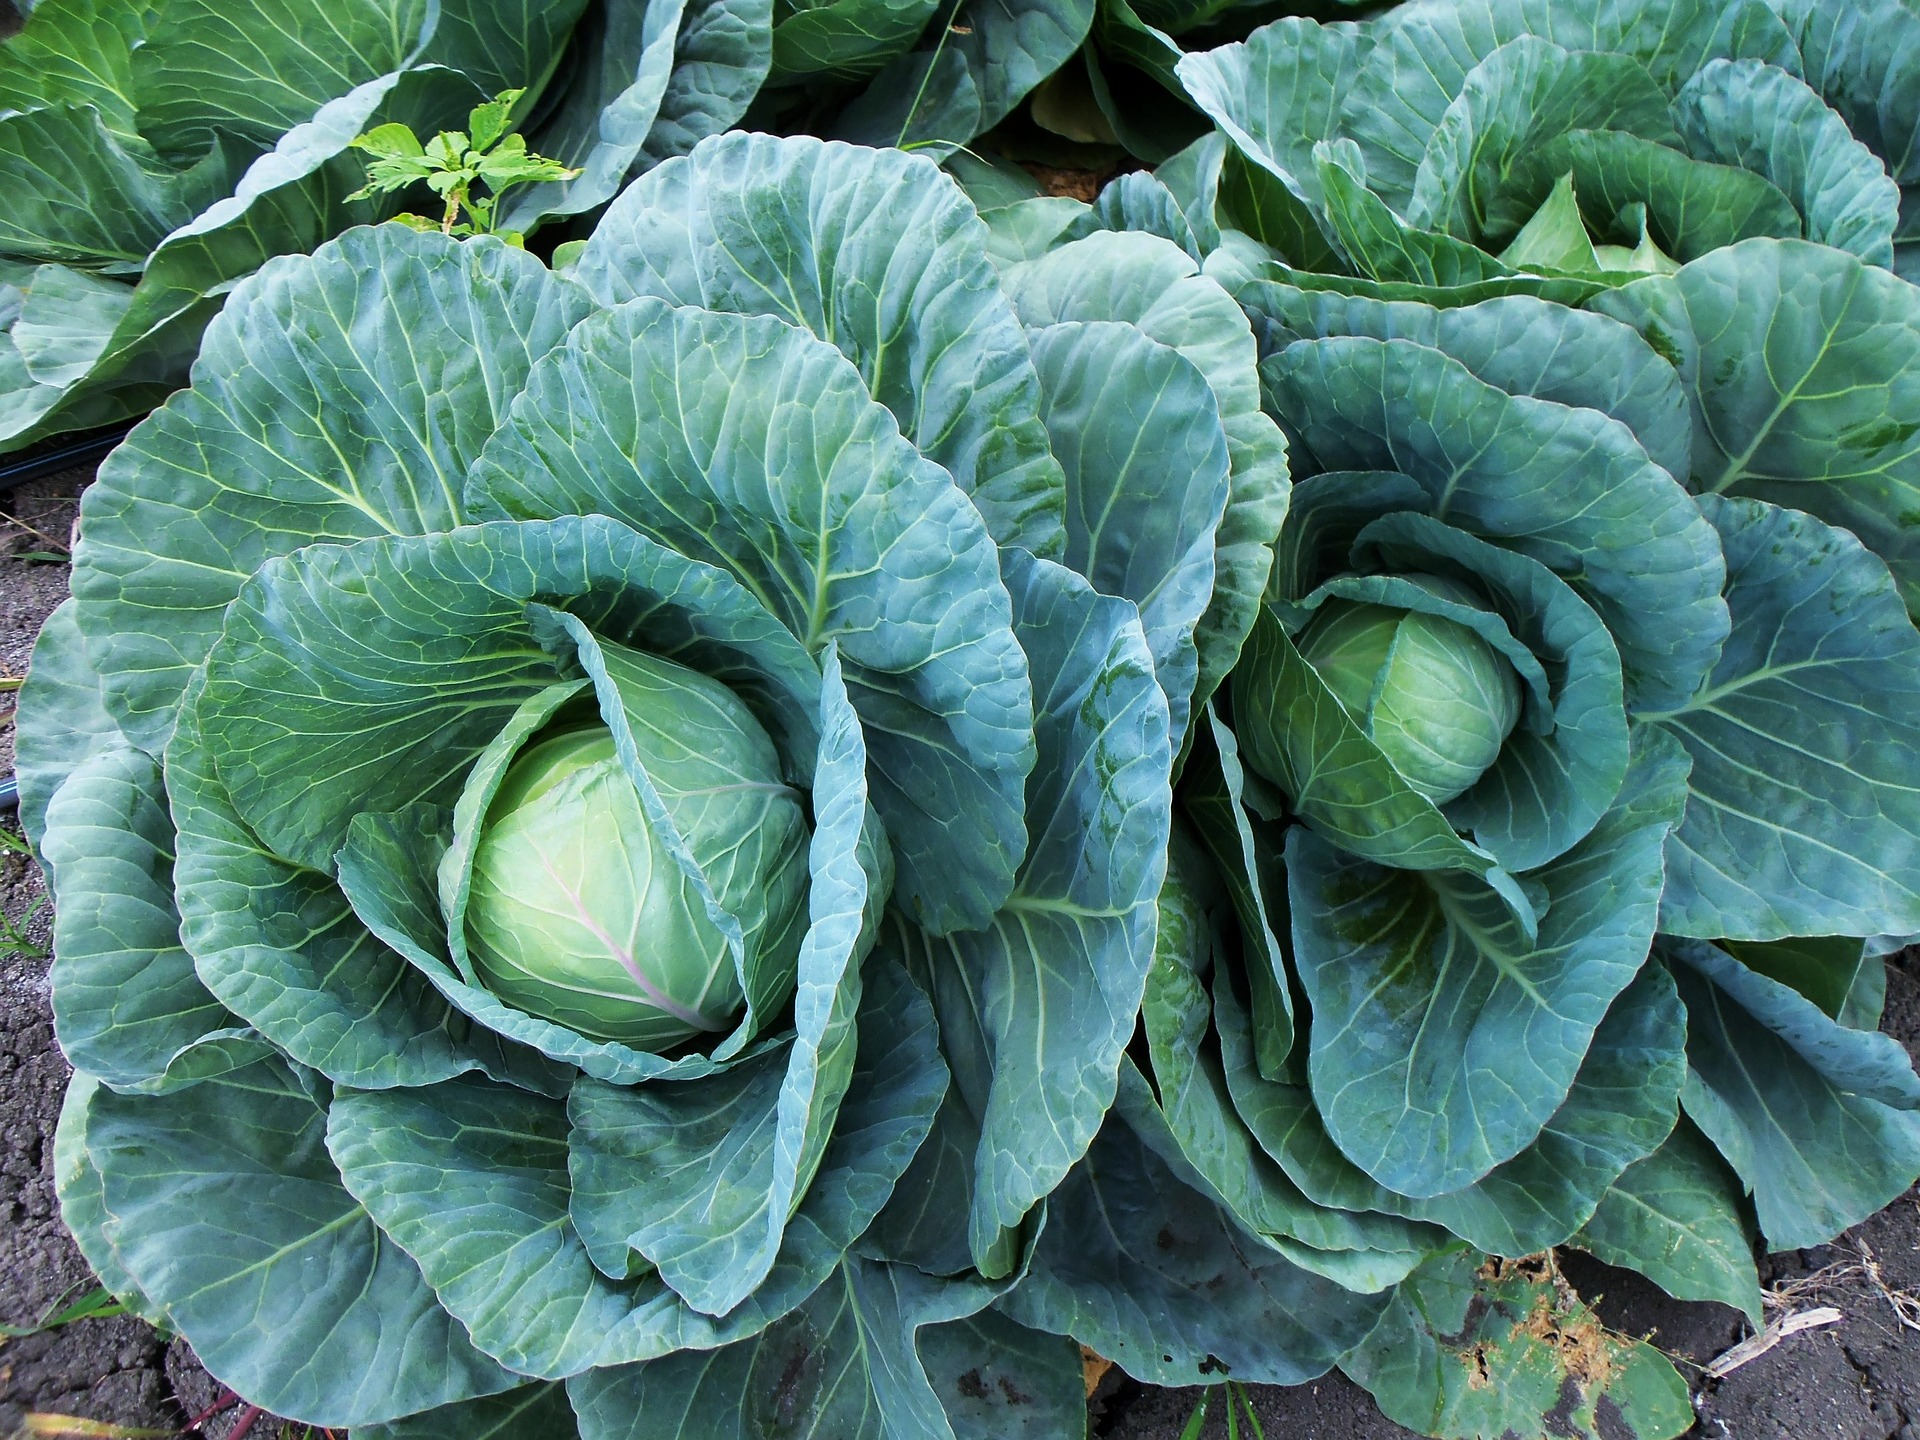 15 Giant Vegetables You Can Grow in Your Garden